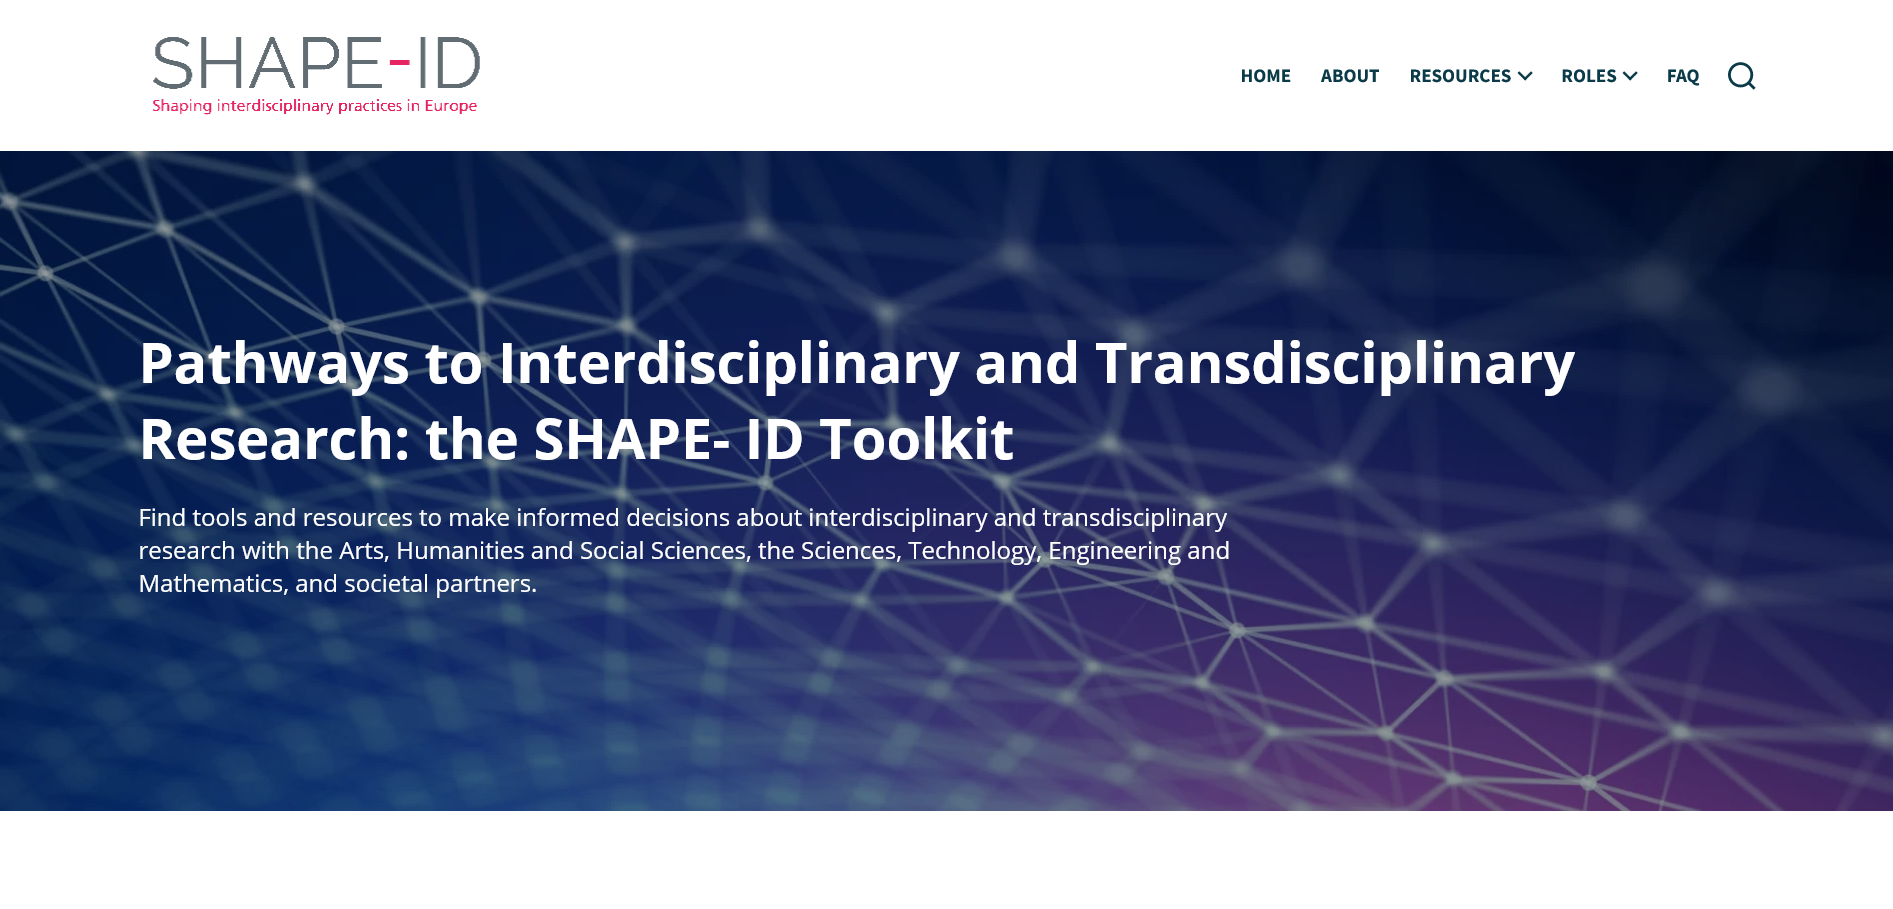 SHAPE-ID Toolkit Launched